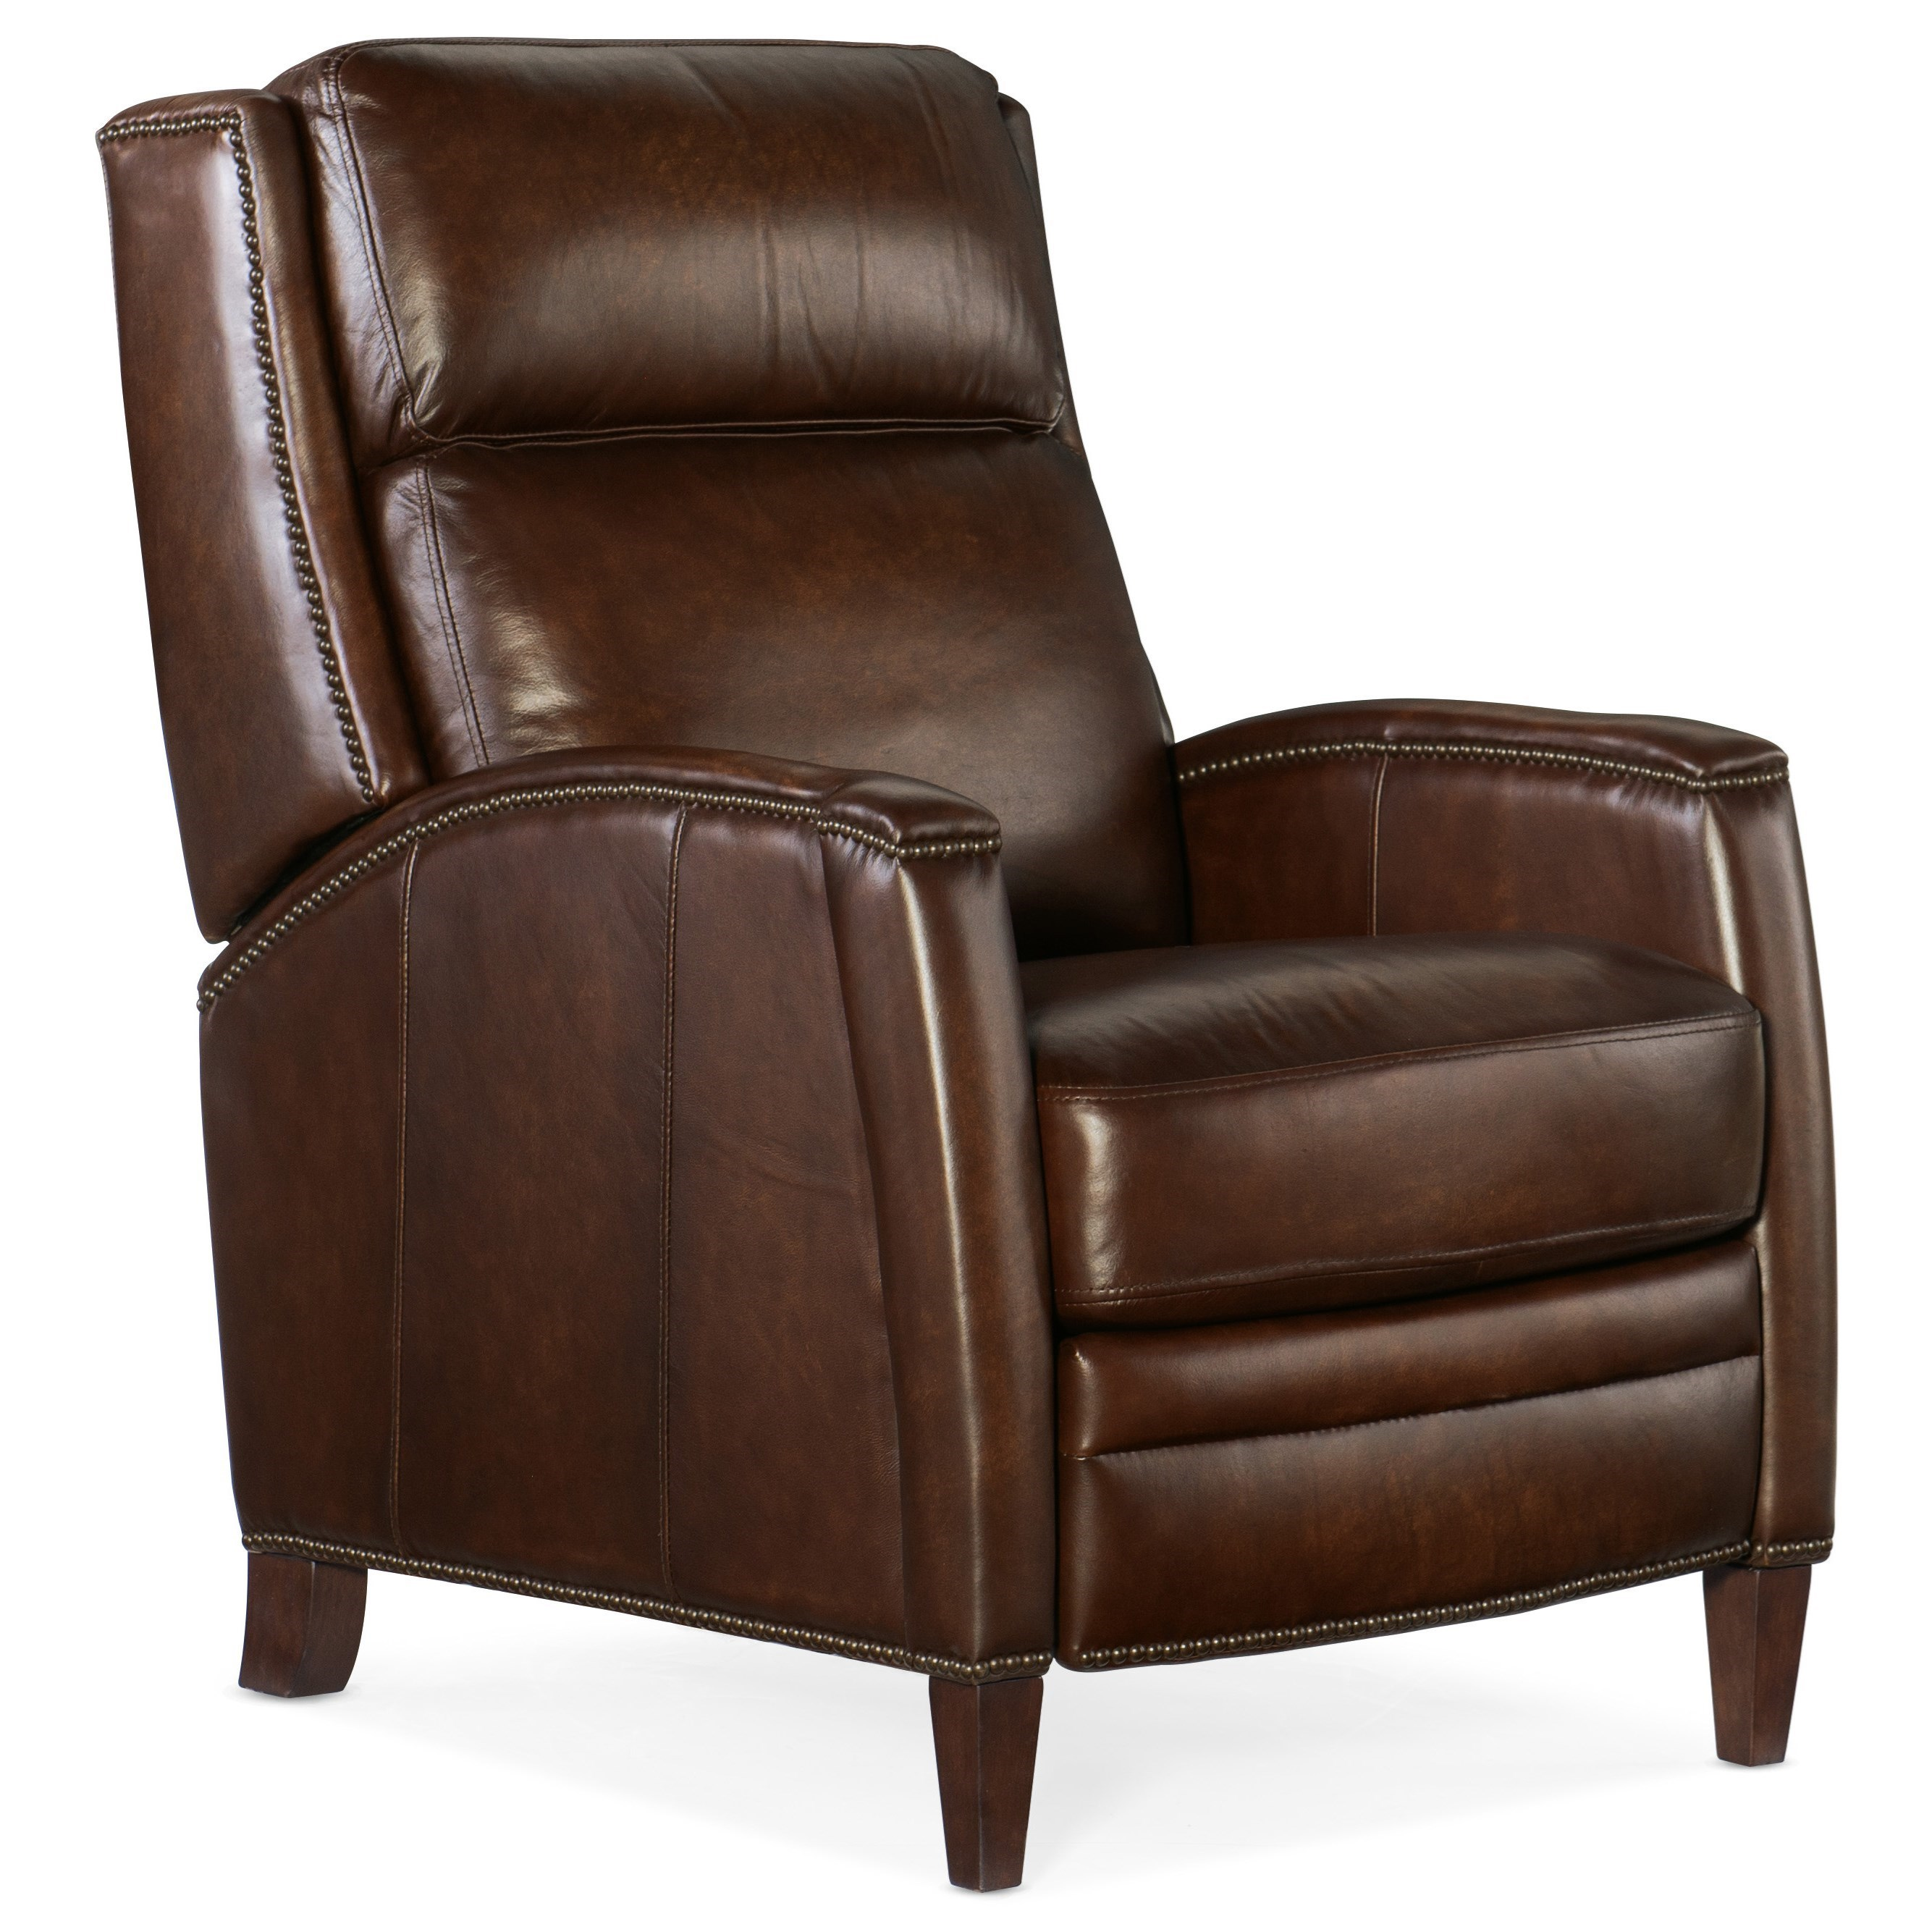 Declan Manual Push Back Recliner by Hooker Furniture at Johnny Janosik